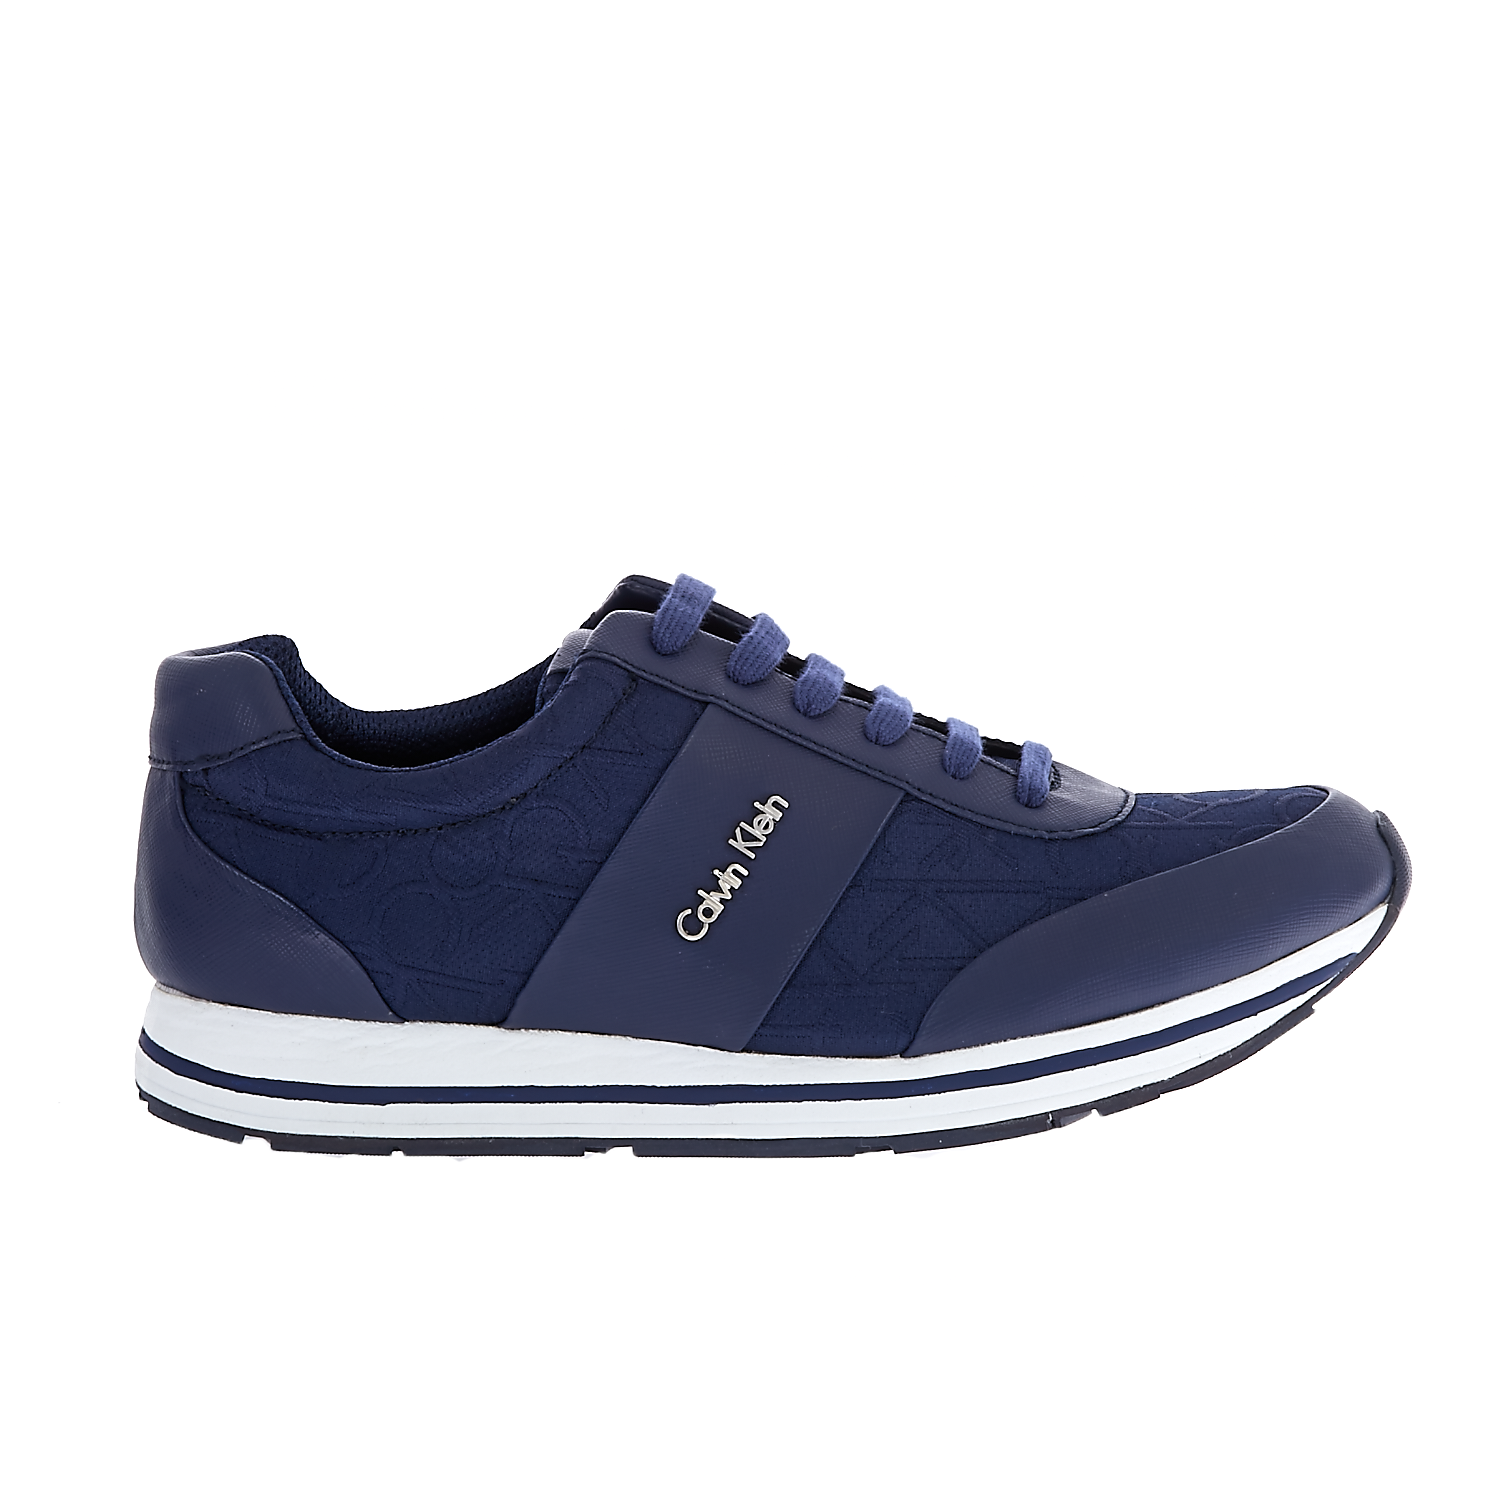 CALVIN KLEIN JEANS - Ανδρικά sneakers CALVIN KLEIN JEANS REED μπλε ανδρικά παπούτσια sneakers